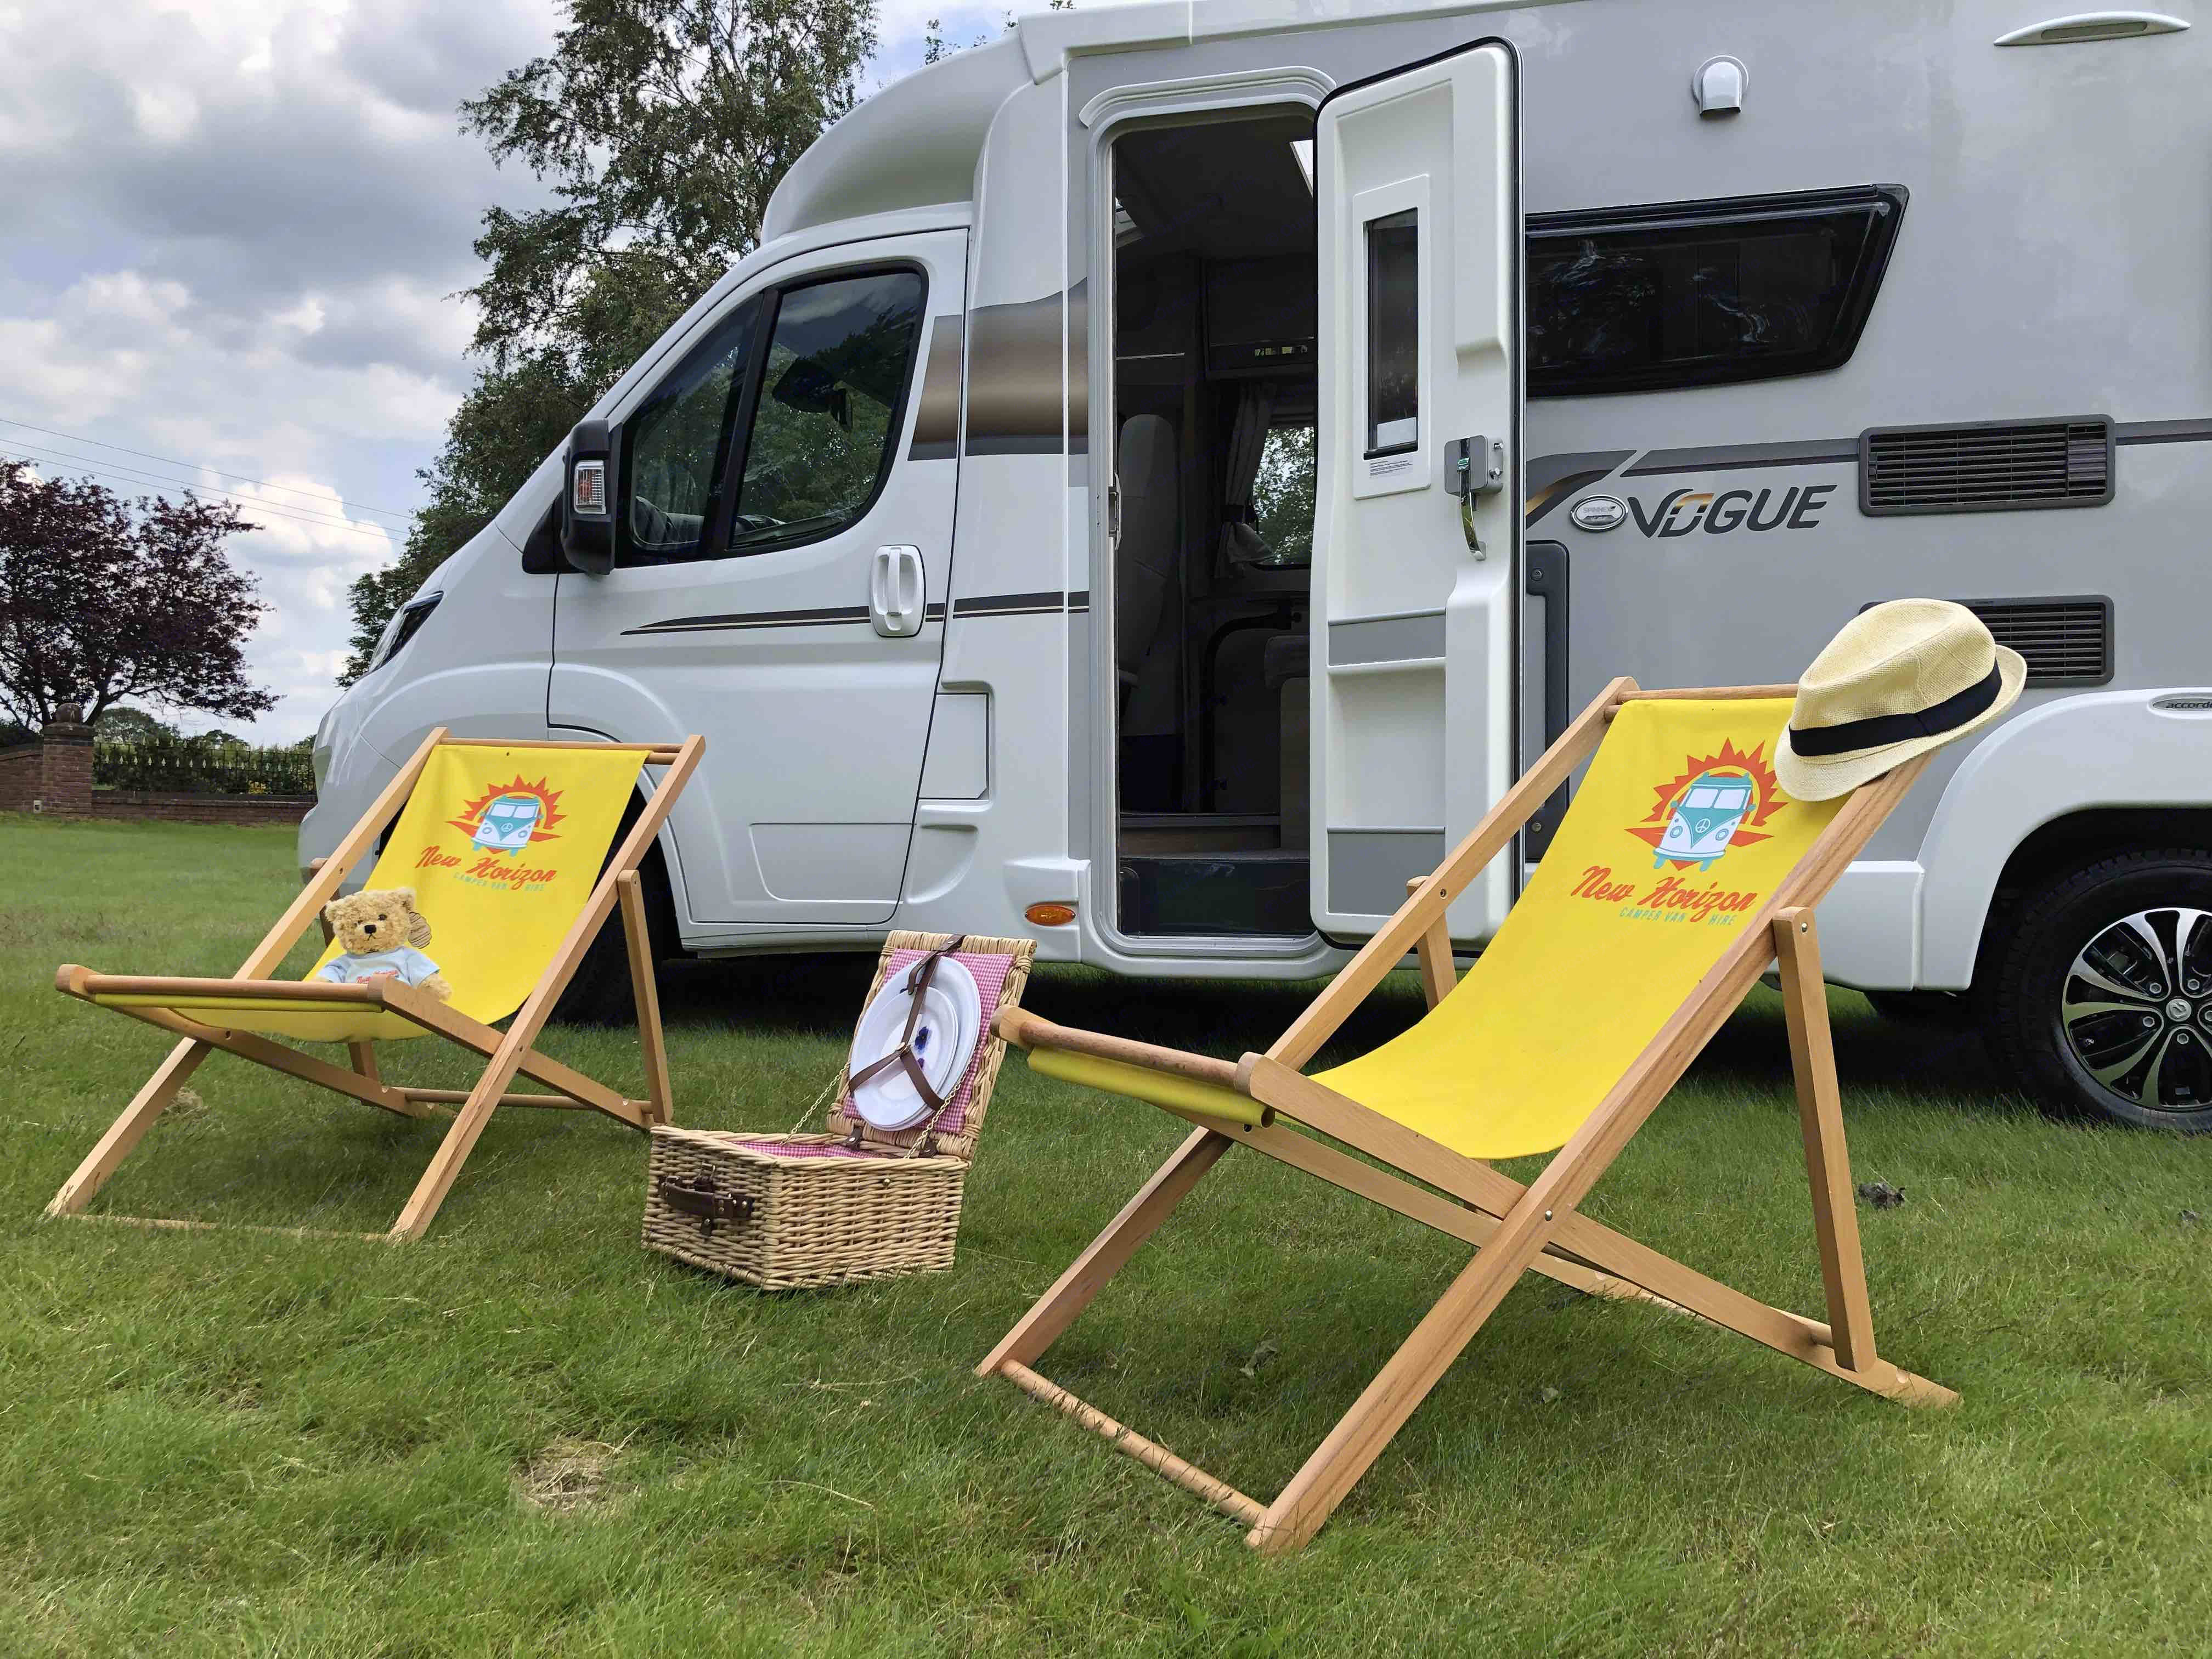 With grade III thermal insulation you can use Brian all year round.. Elddis Accordo 135 2019